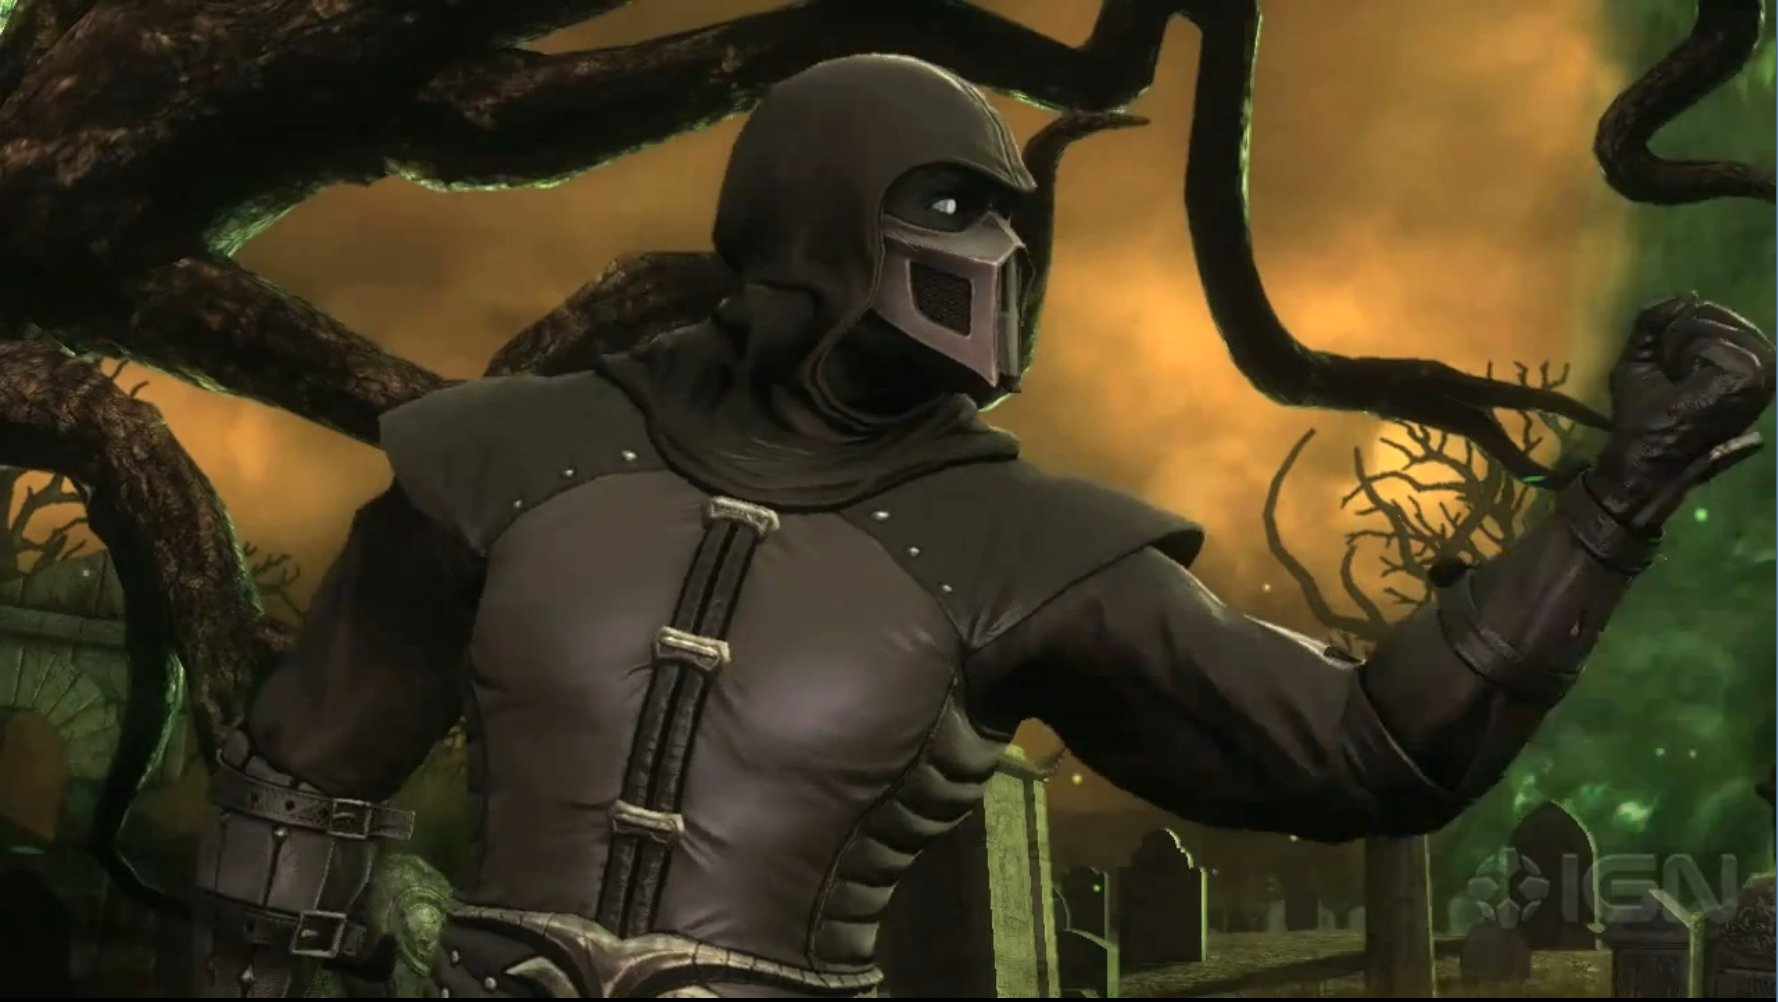 noob-saibot-Head-Body-World-GILGAMESH-Noob-Saibot-wallpaper-wp427997-1